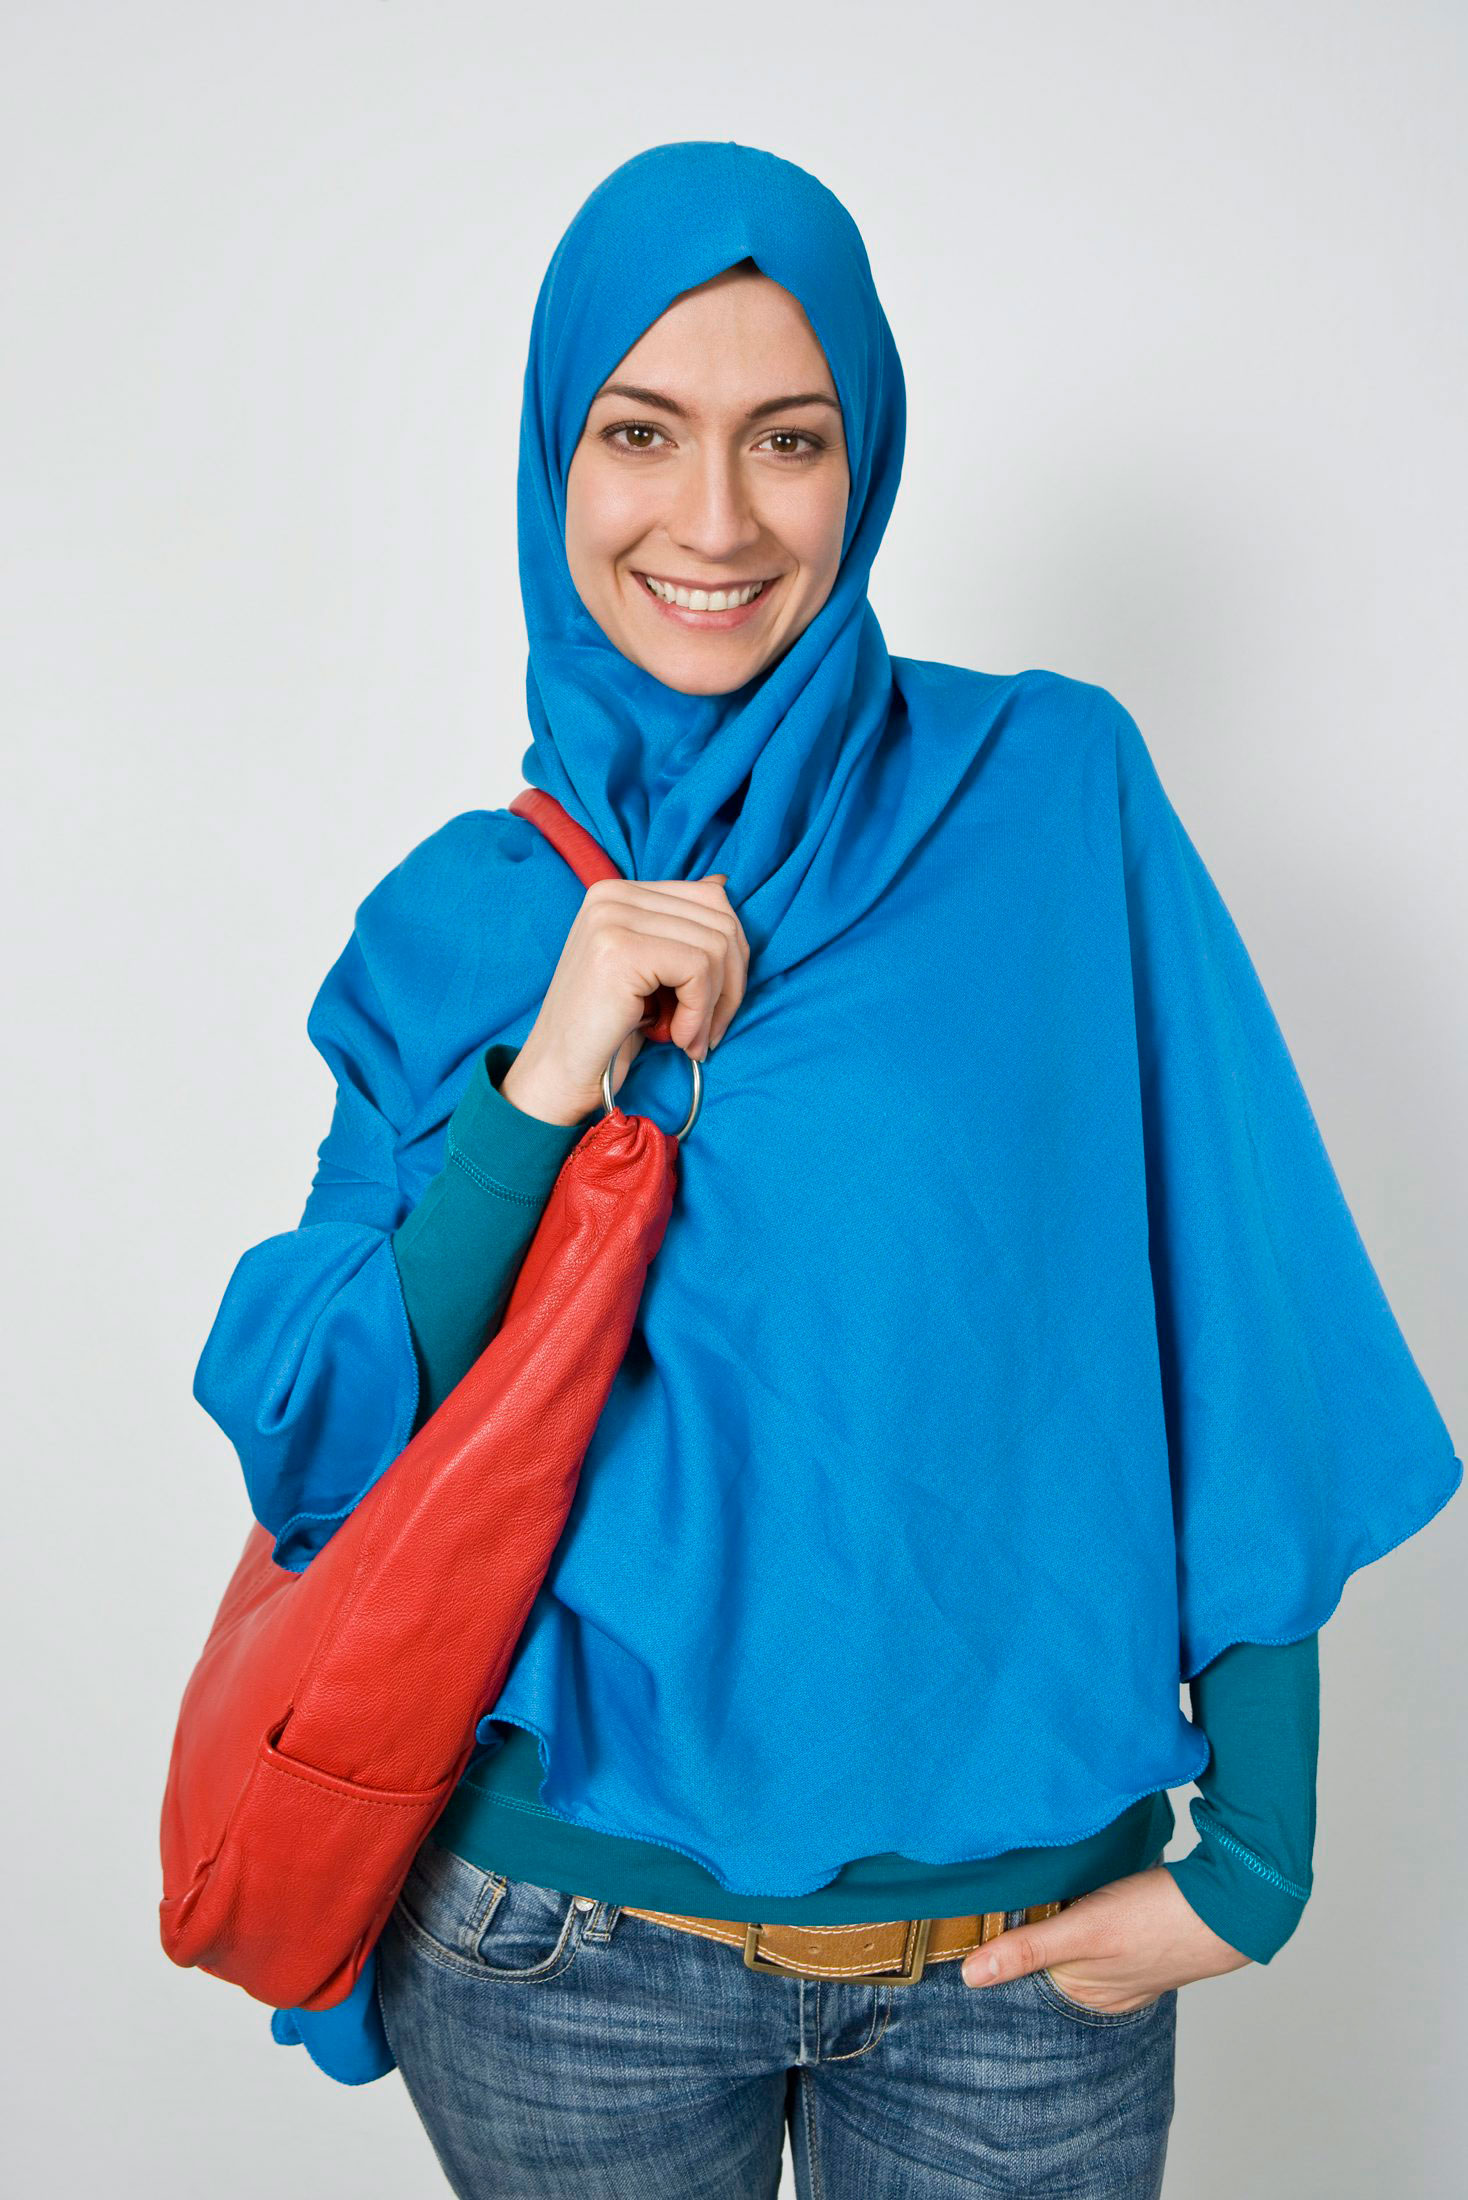 https://i2.wp.com/www.haaretz.co.il/st/inter/Heng/Products/hijab/hijab1.jpg